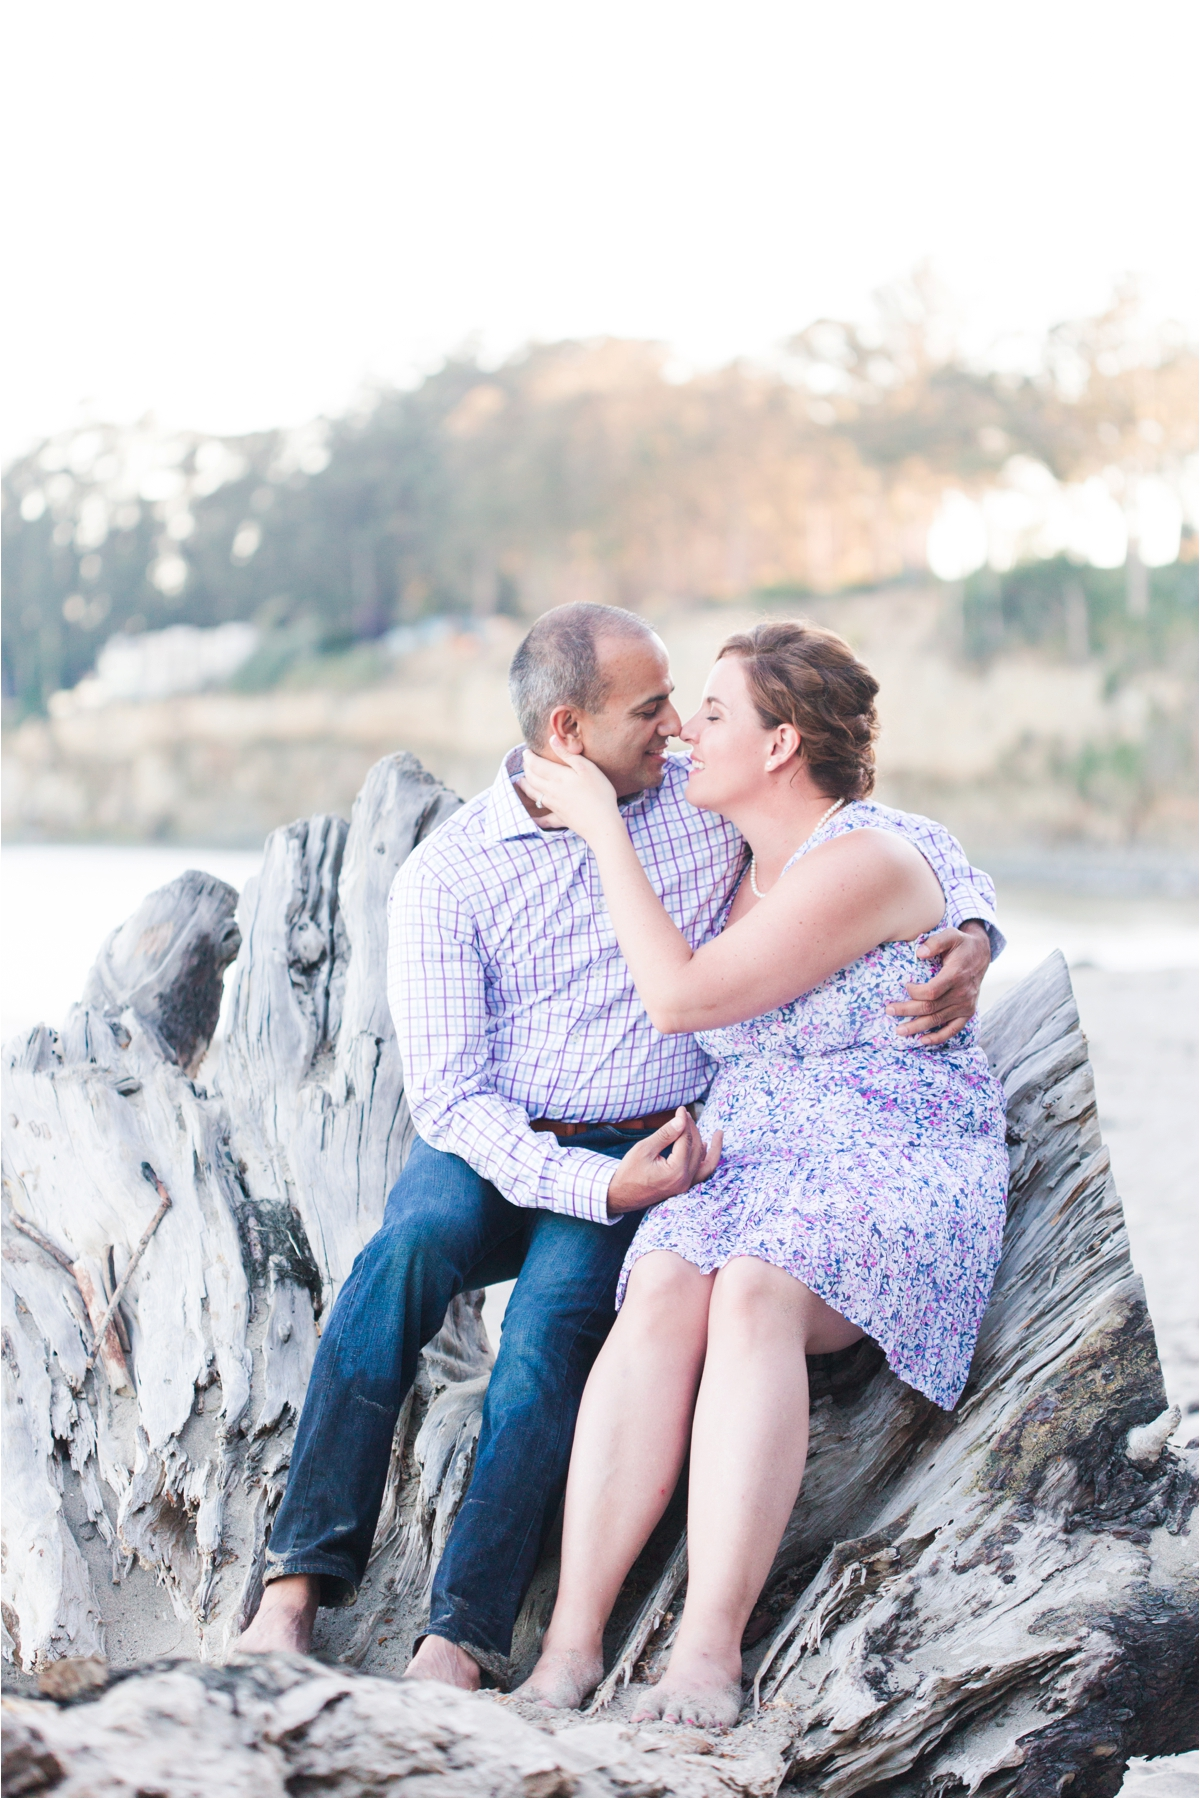 New Brighton beach engagement pictures by Briana Calderon Photography_0277.jpg